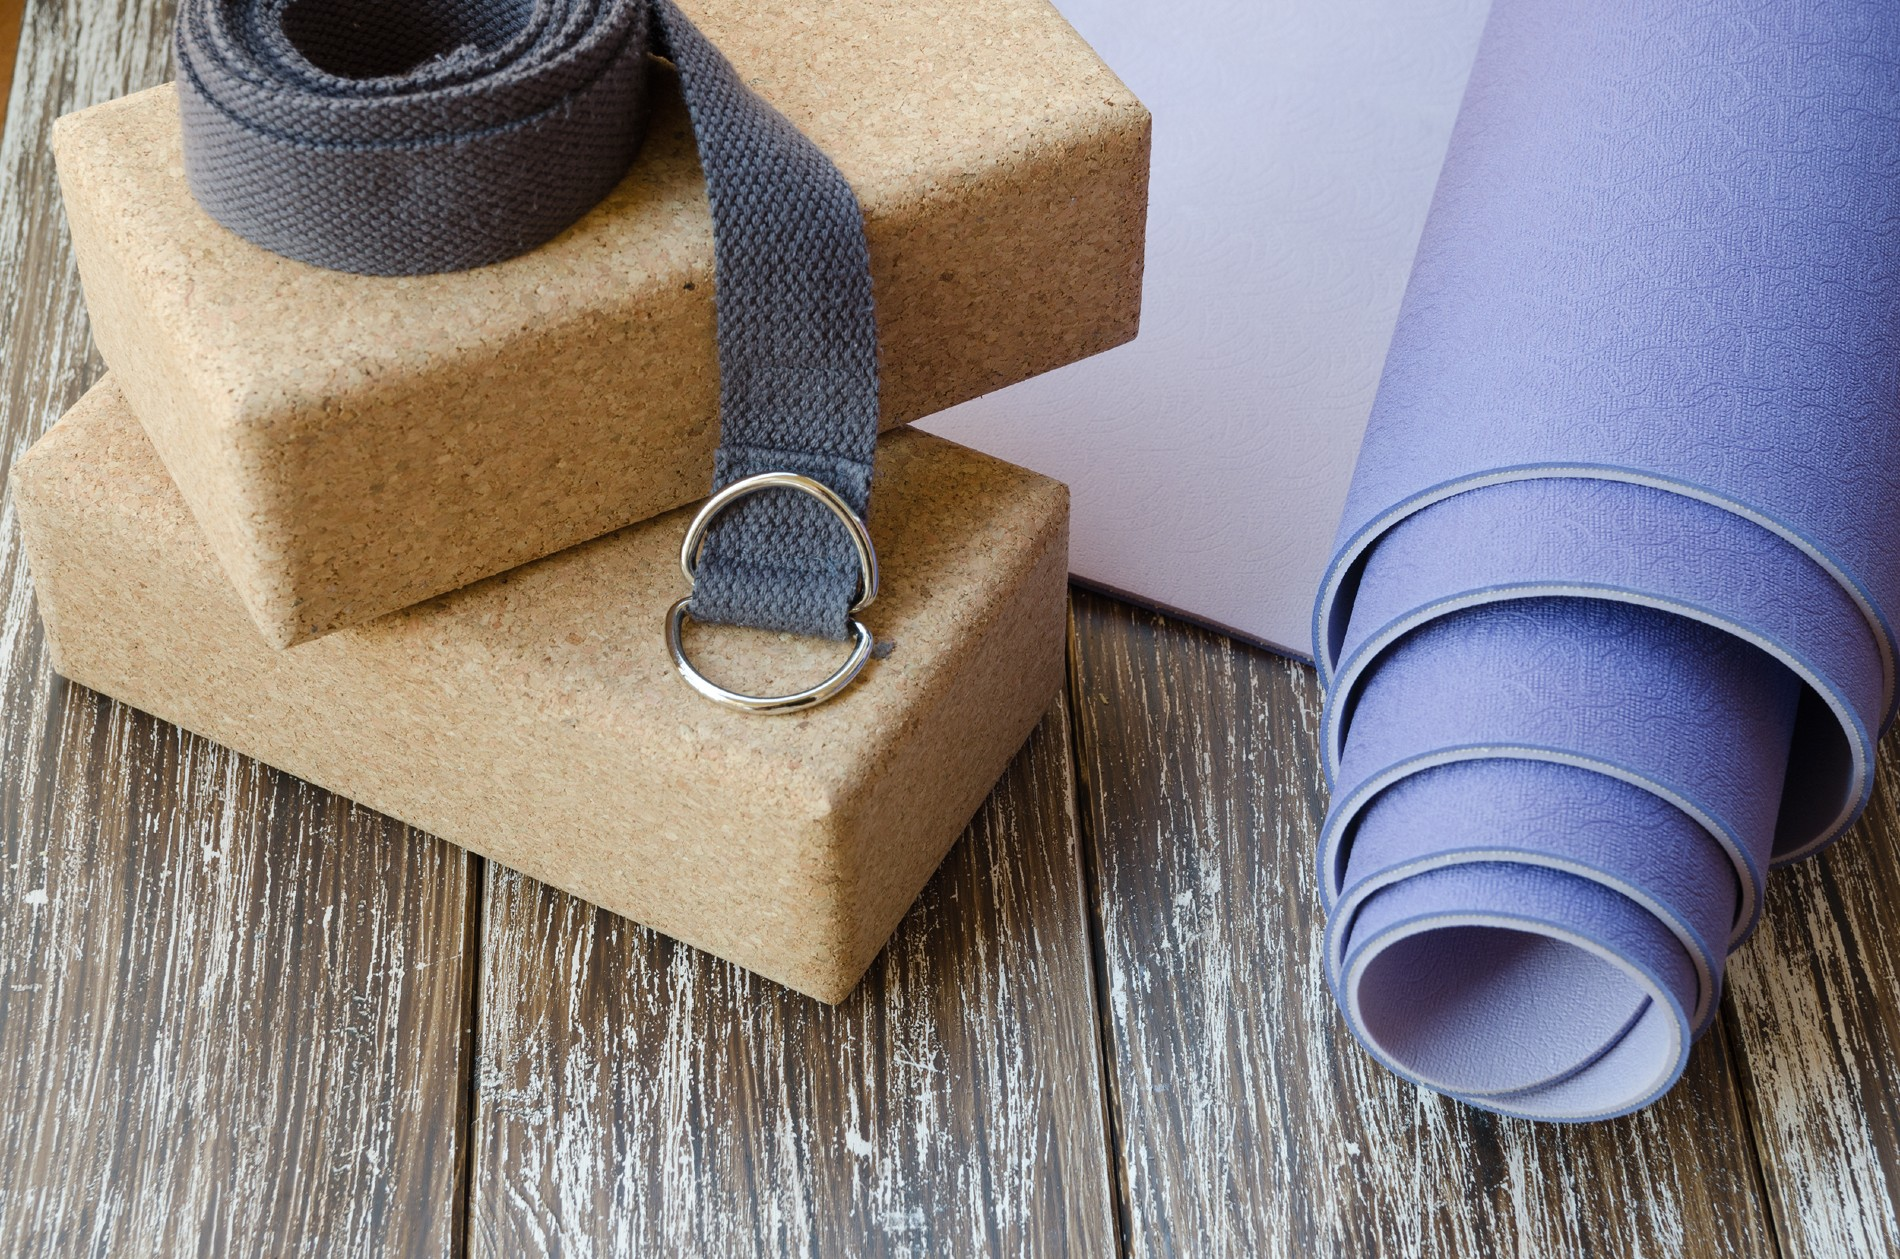 Sturdy Yoga Block and Strap Sets to Enhance Your Flexibility & Form